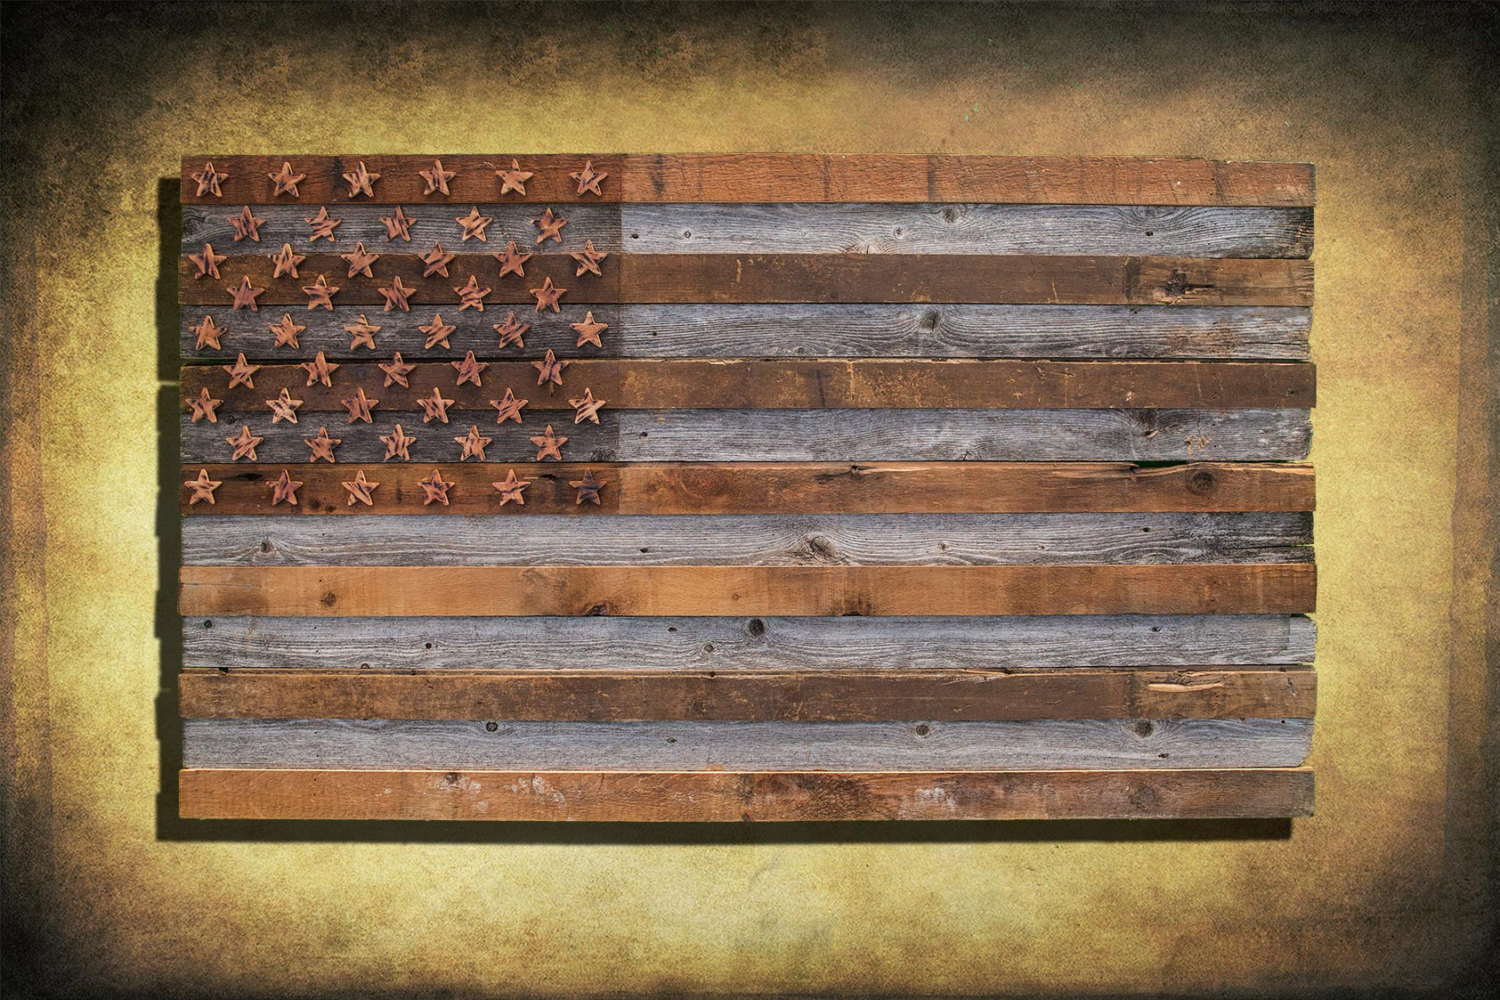 Barnwood American Flag, 100 Year Old Wood, One Of A Kind, 3D, Wooden Within Well Liked American Flag 3D Wall Decor (View 10 of 20)